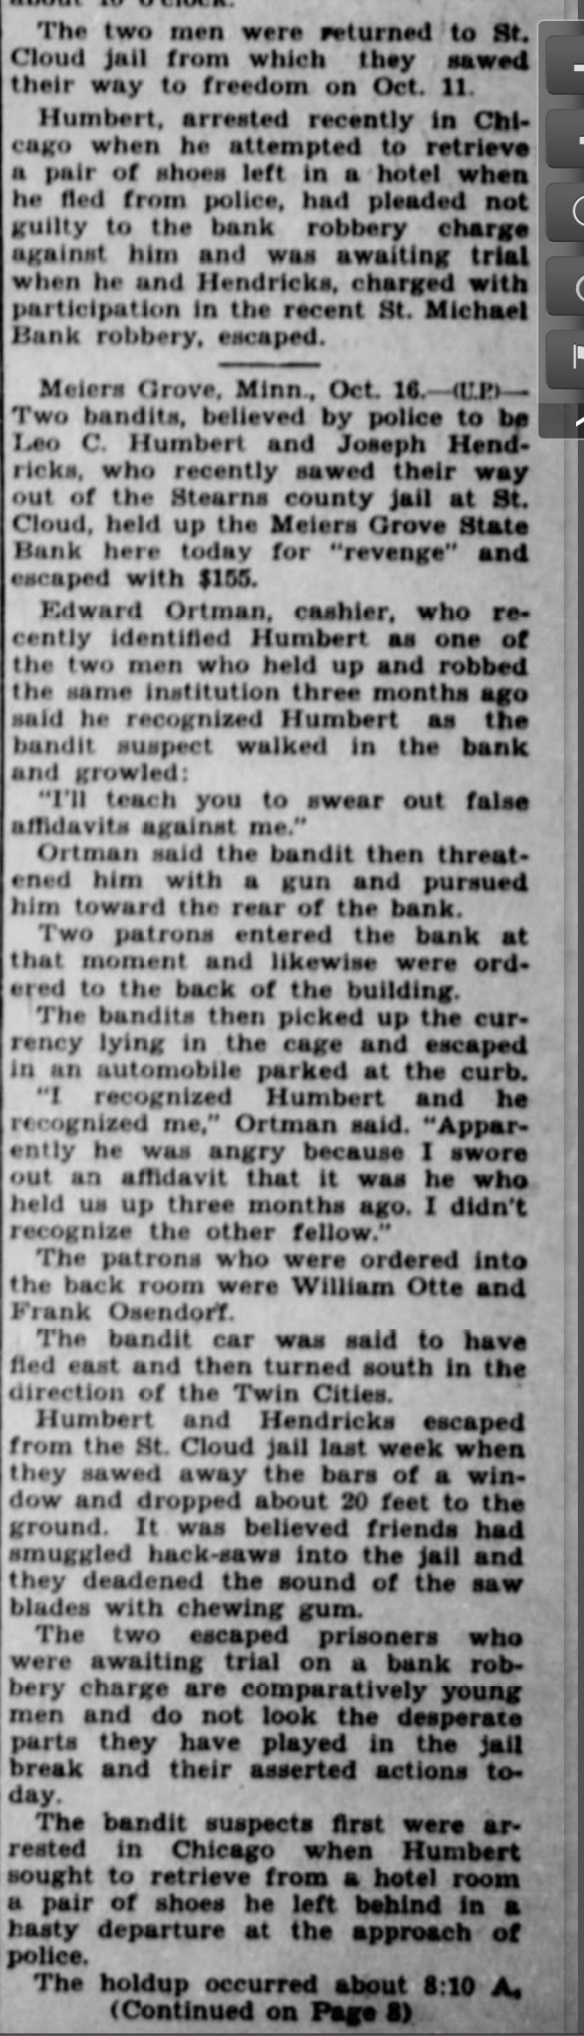 brainerd daily dispatch 16 oct 1929 part 2